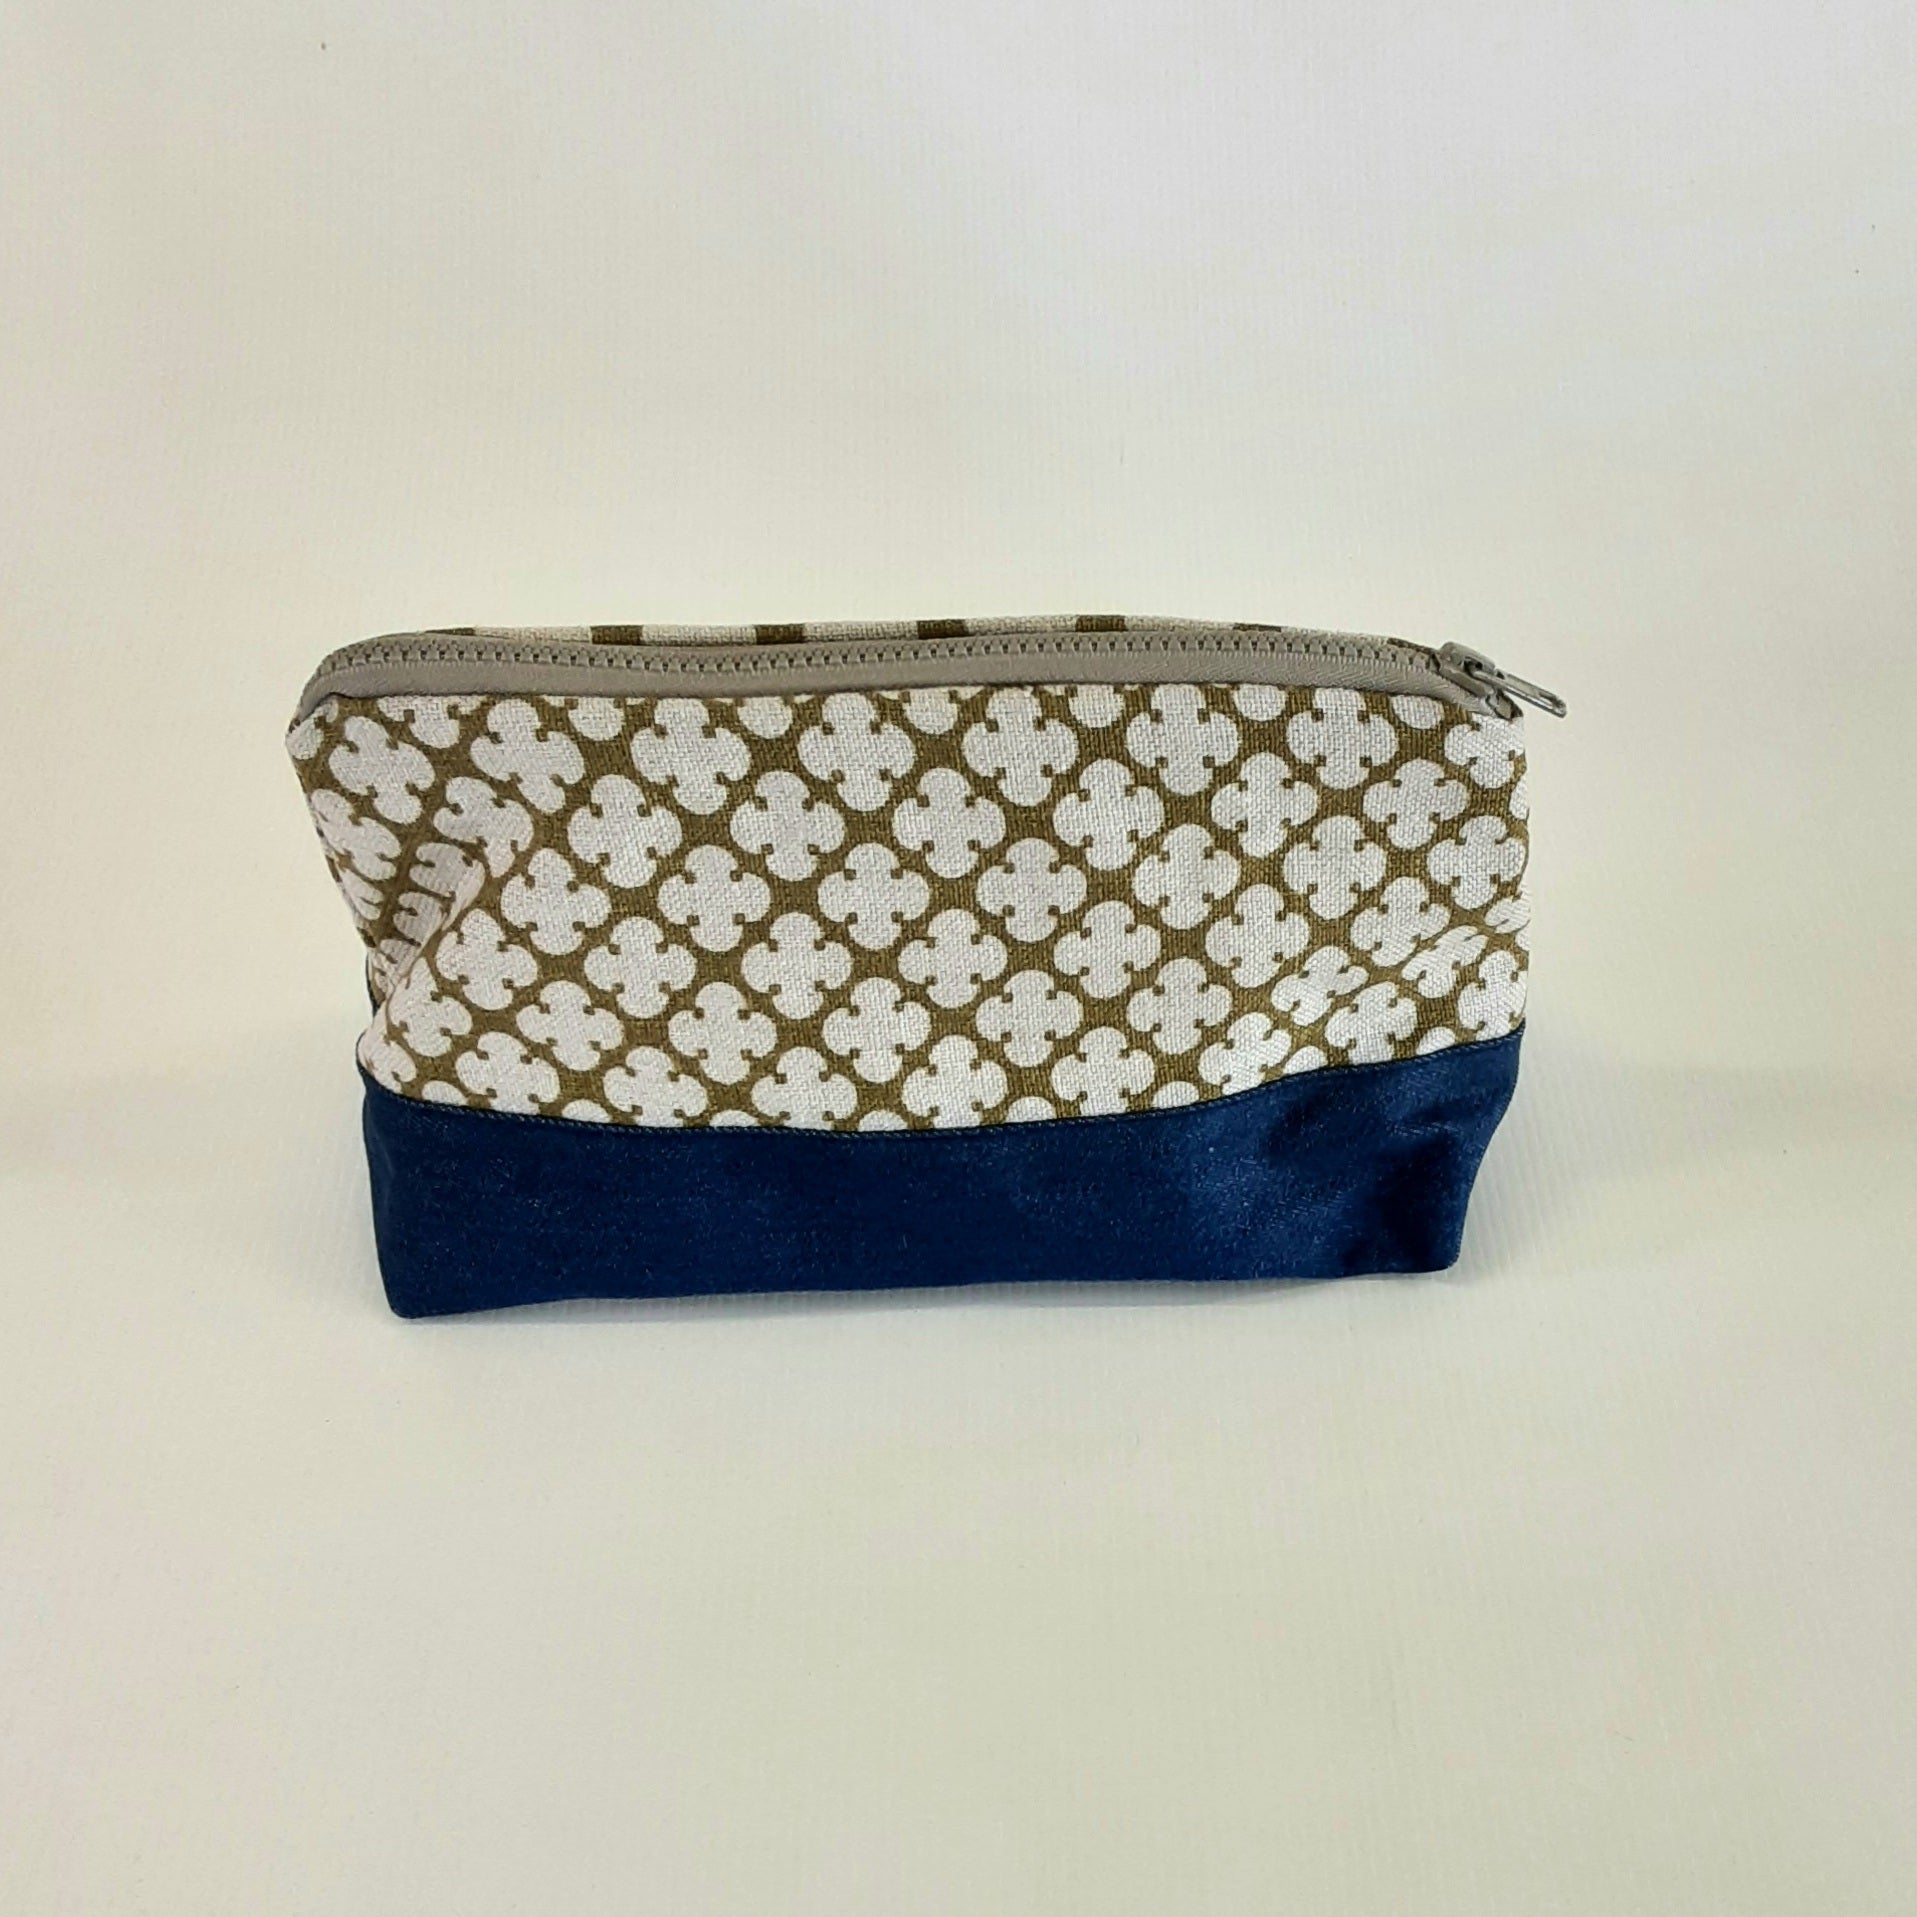 Cosmetic Bag - LIV Creative